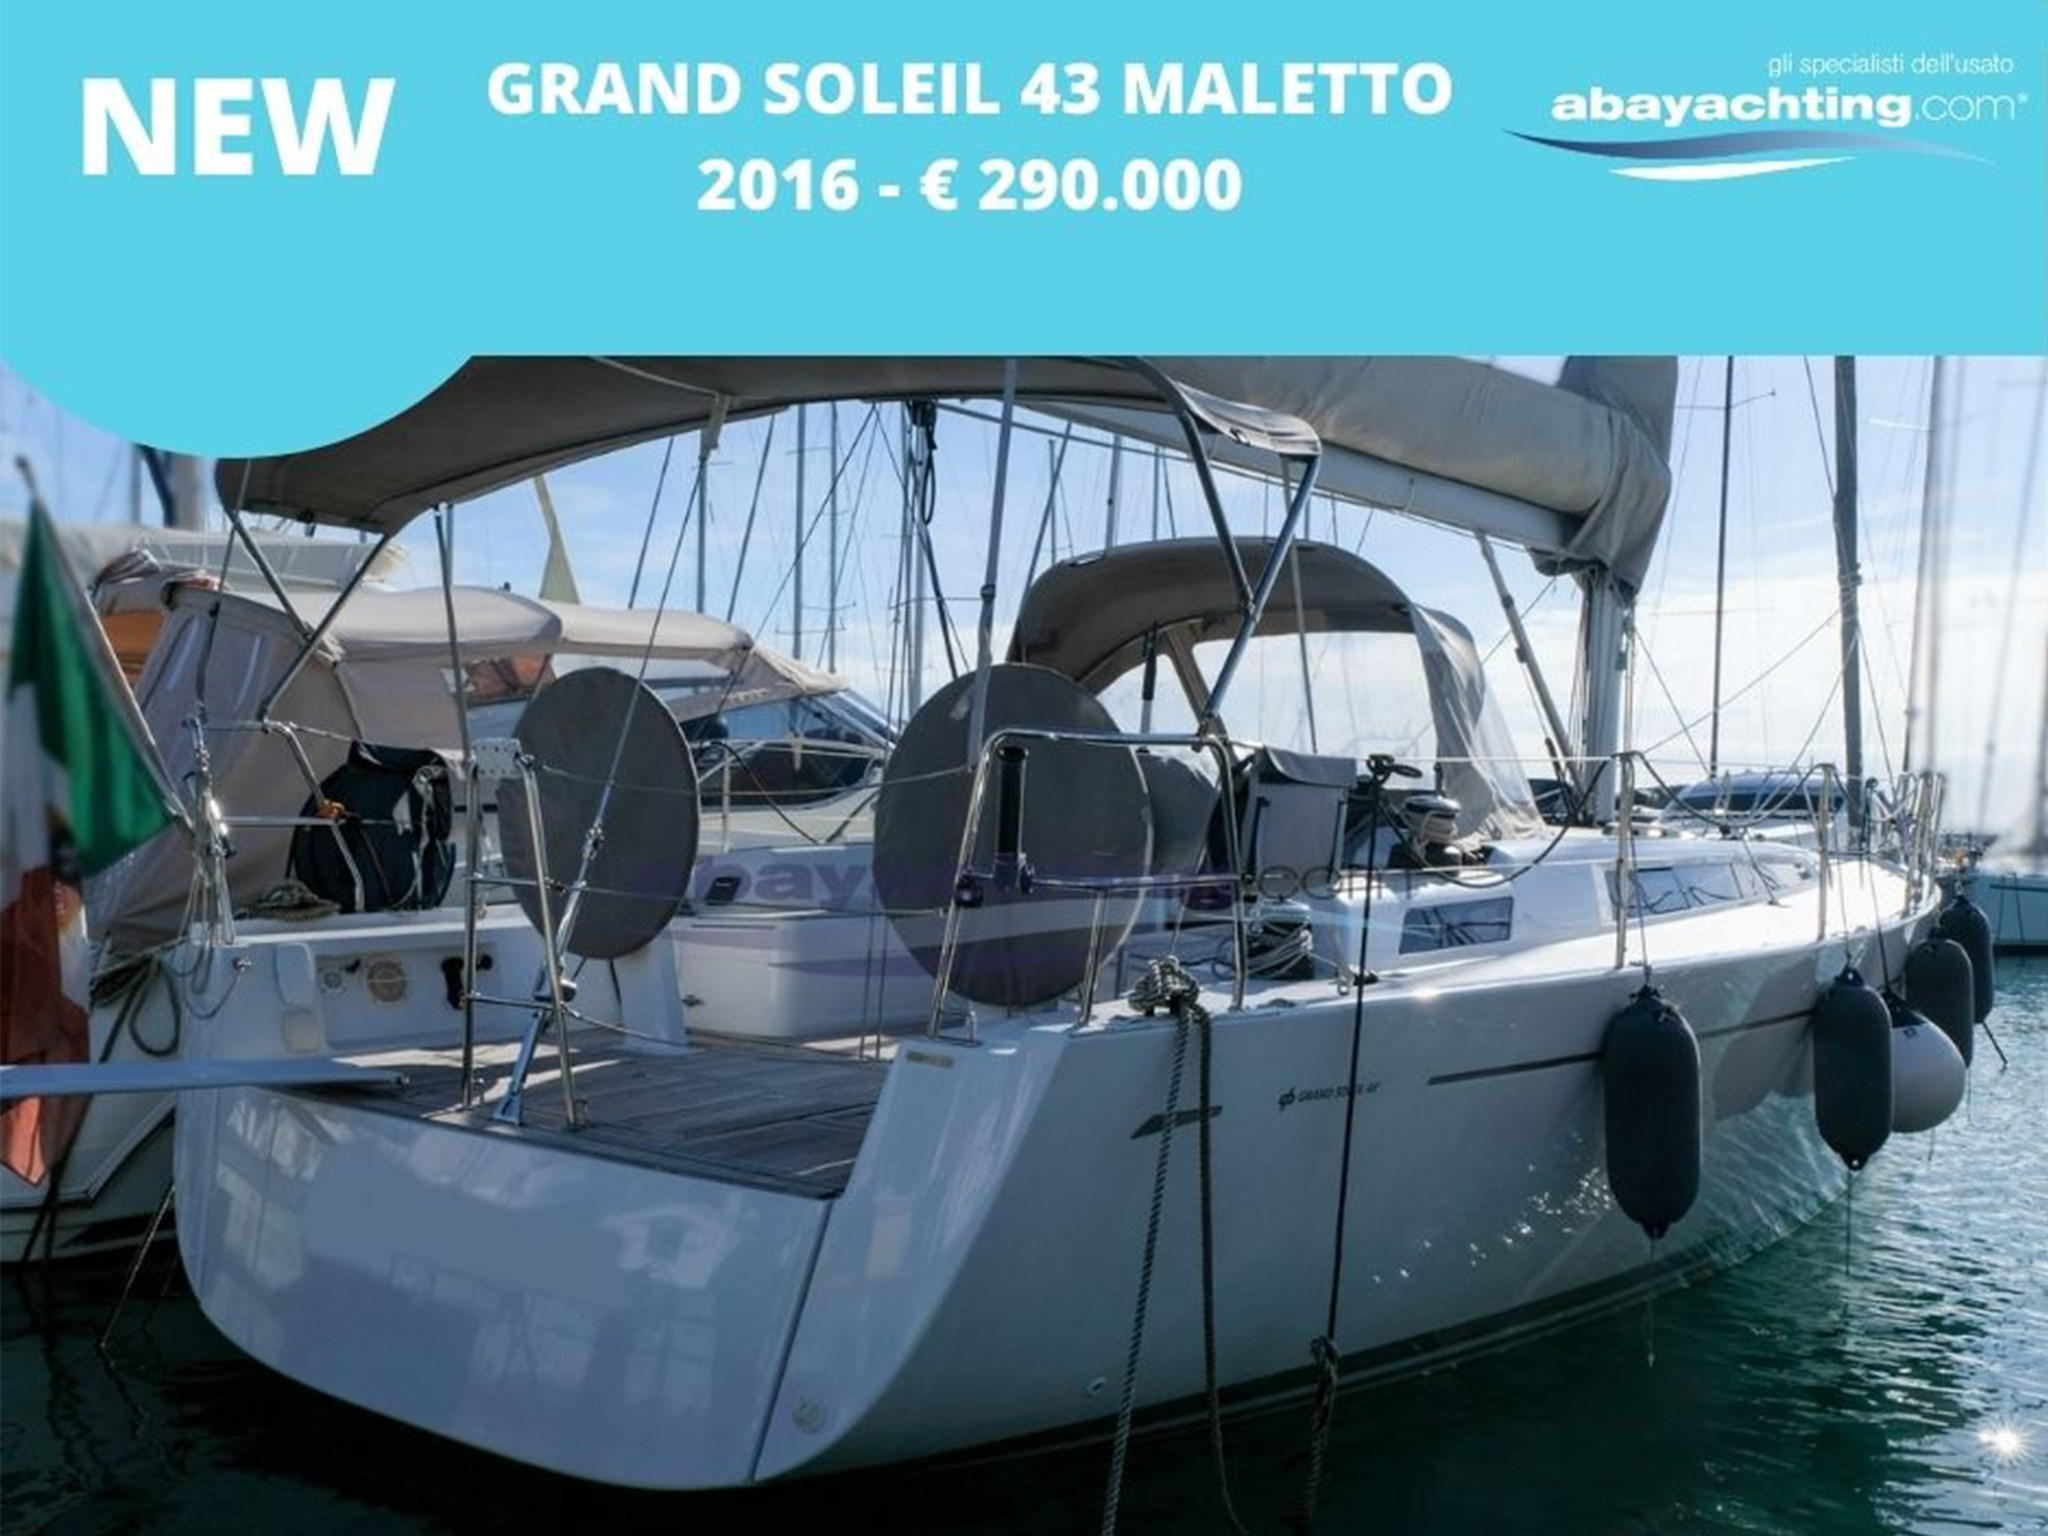 New arrival Grand Soleil 43 Maletto 2016